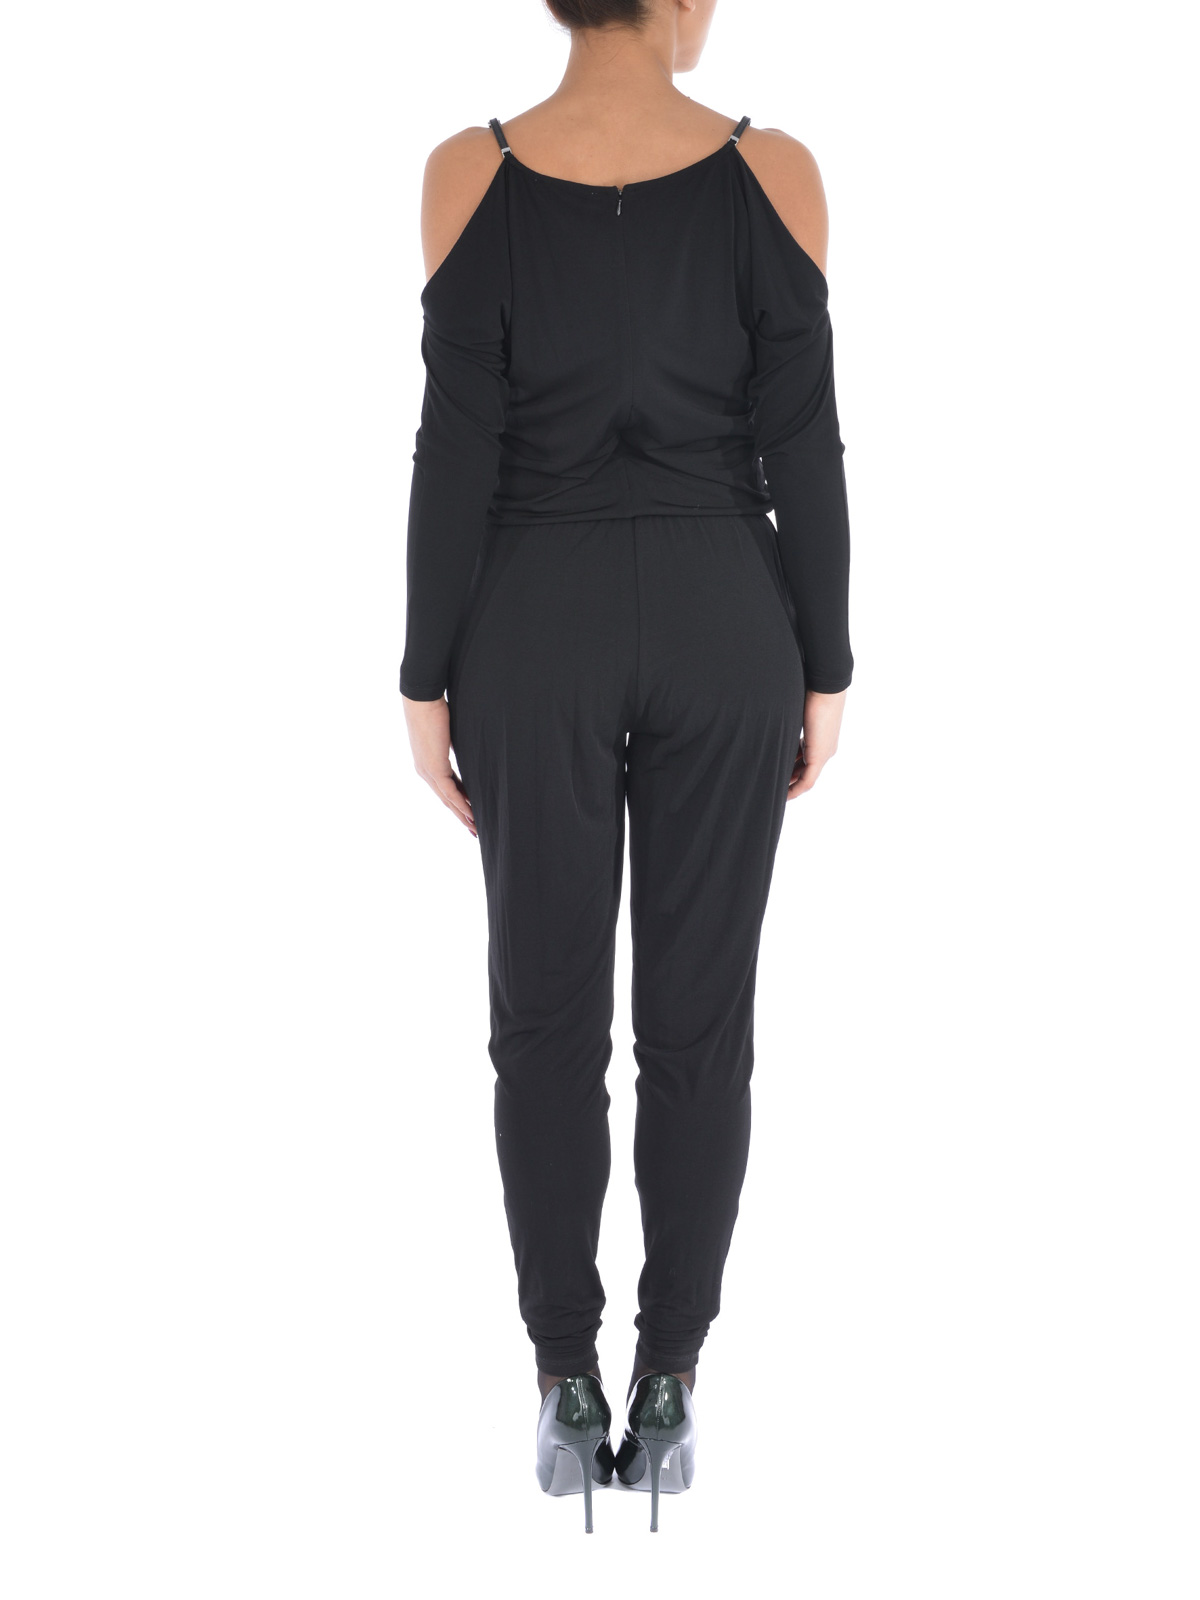 Free shipping BOTH ways on michael michael kors long sleeve chain neck wide leg jumpsuit, from our vast selection of styles. Fast delivery, and 24/7/ real-person service with a smile. Click or call